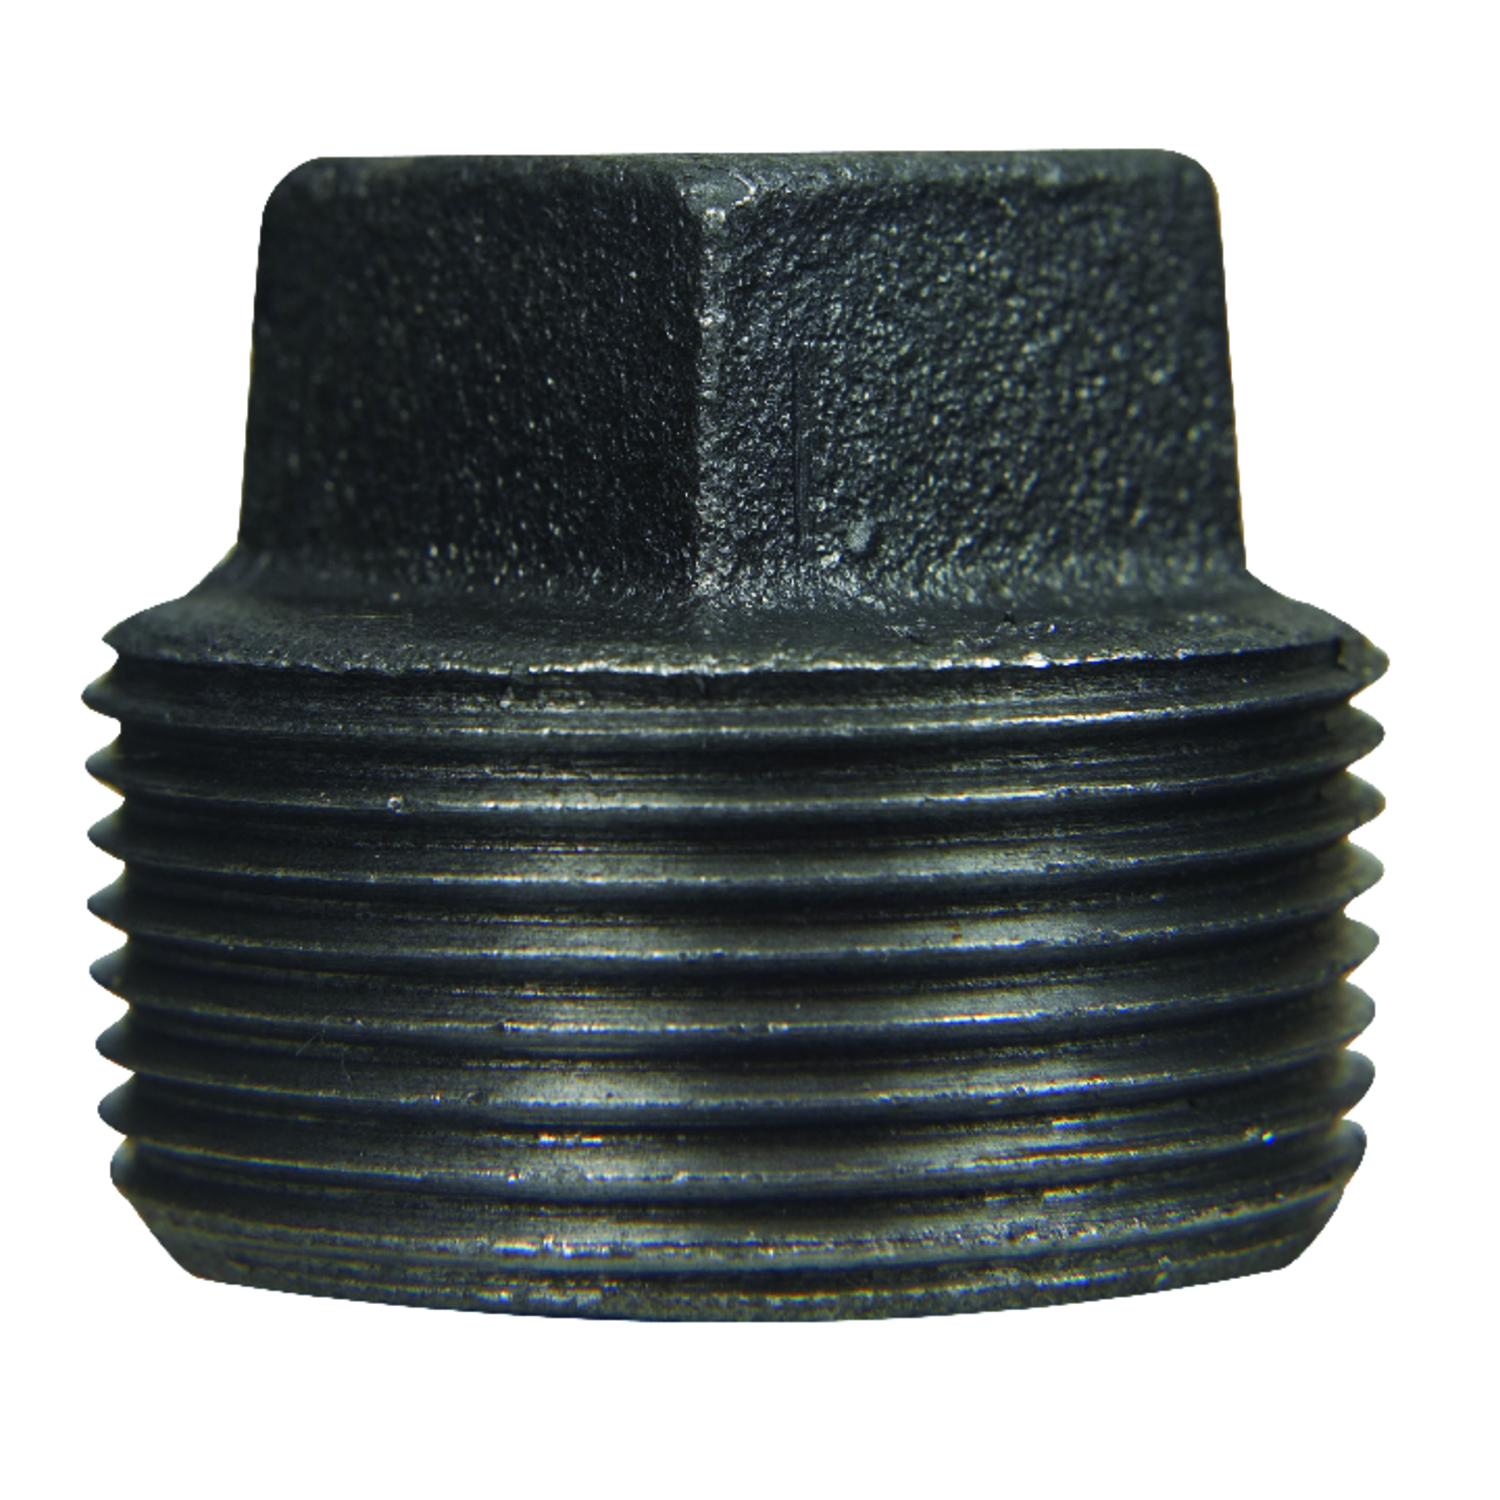 B & K  2 in. MPT   Black  Malleable Iron  Plug